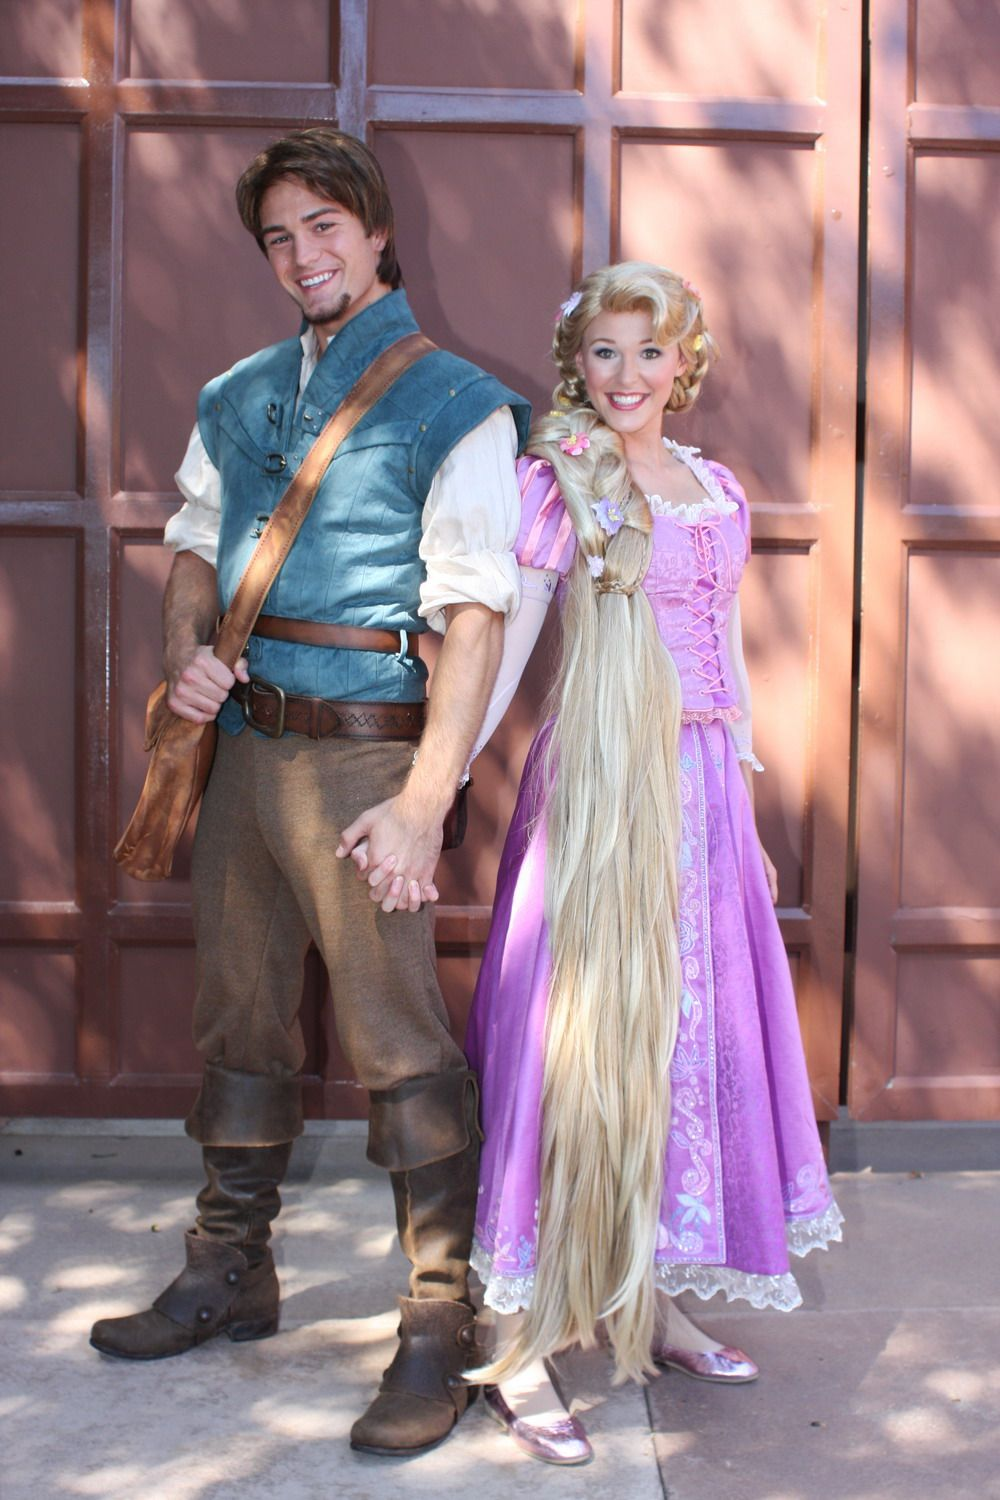 Rapunzel And Flynn Ryder Rapunzel Halloween Costume Disney Couple Costumes Disney Halloween Costumes